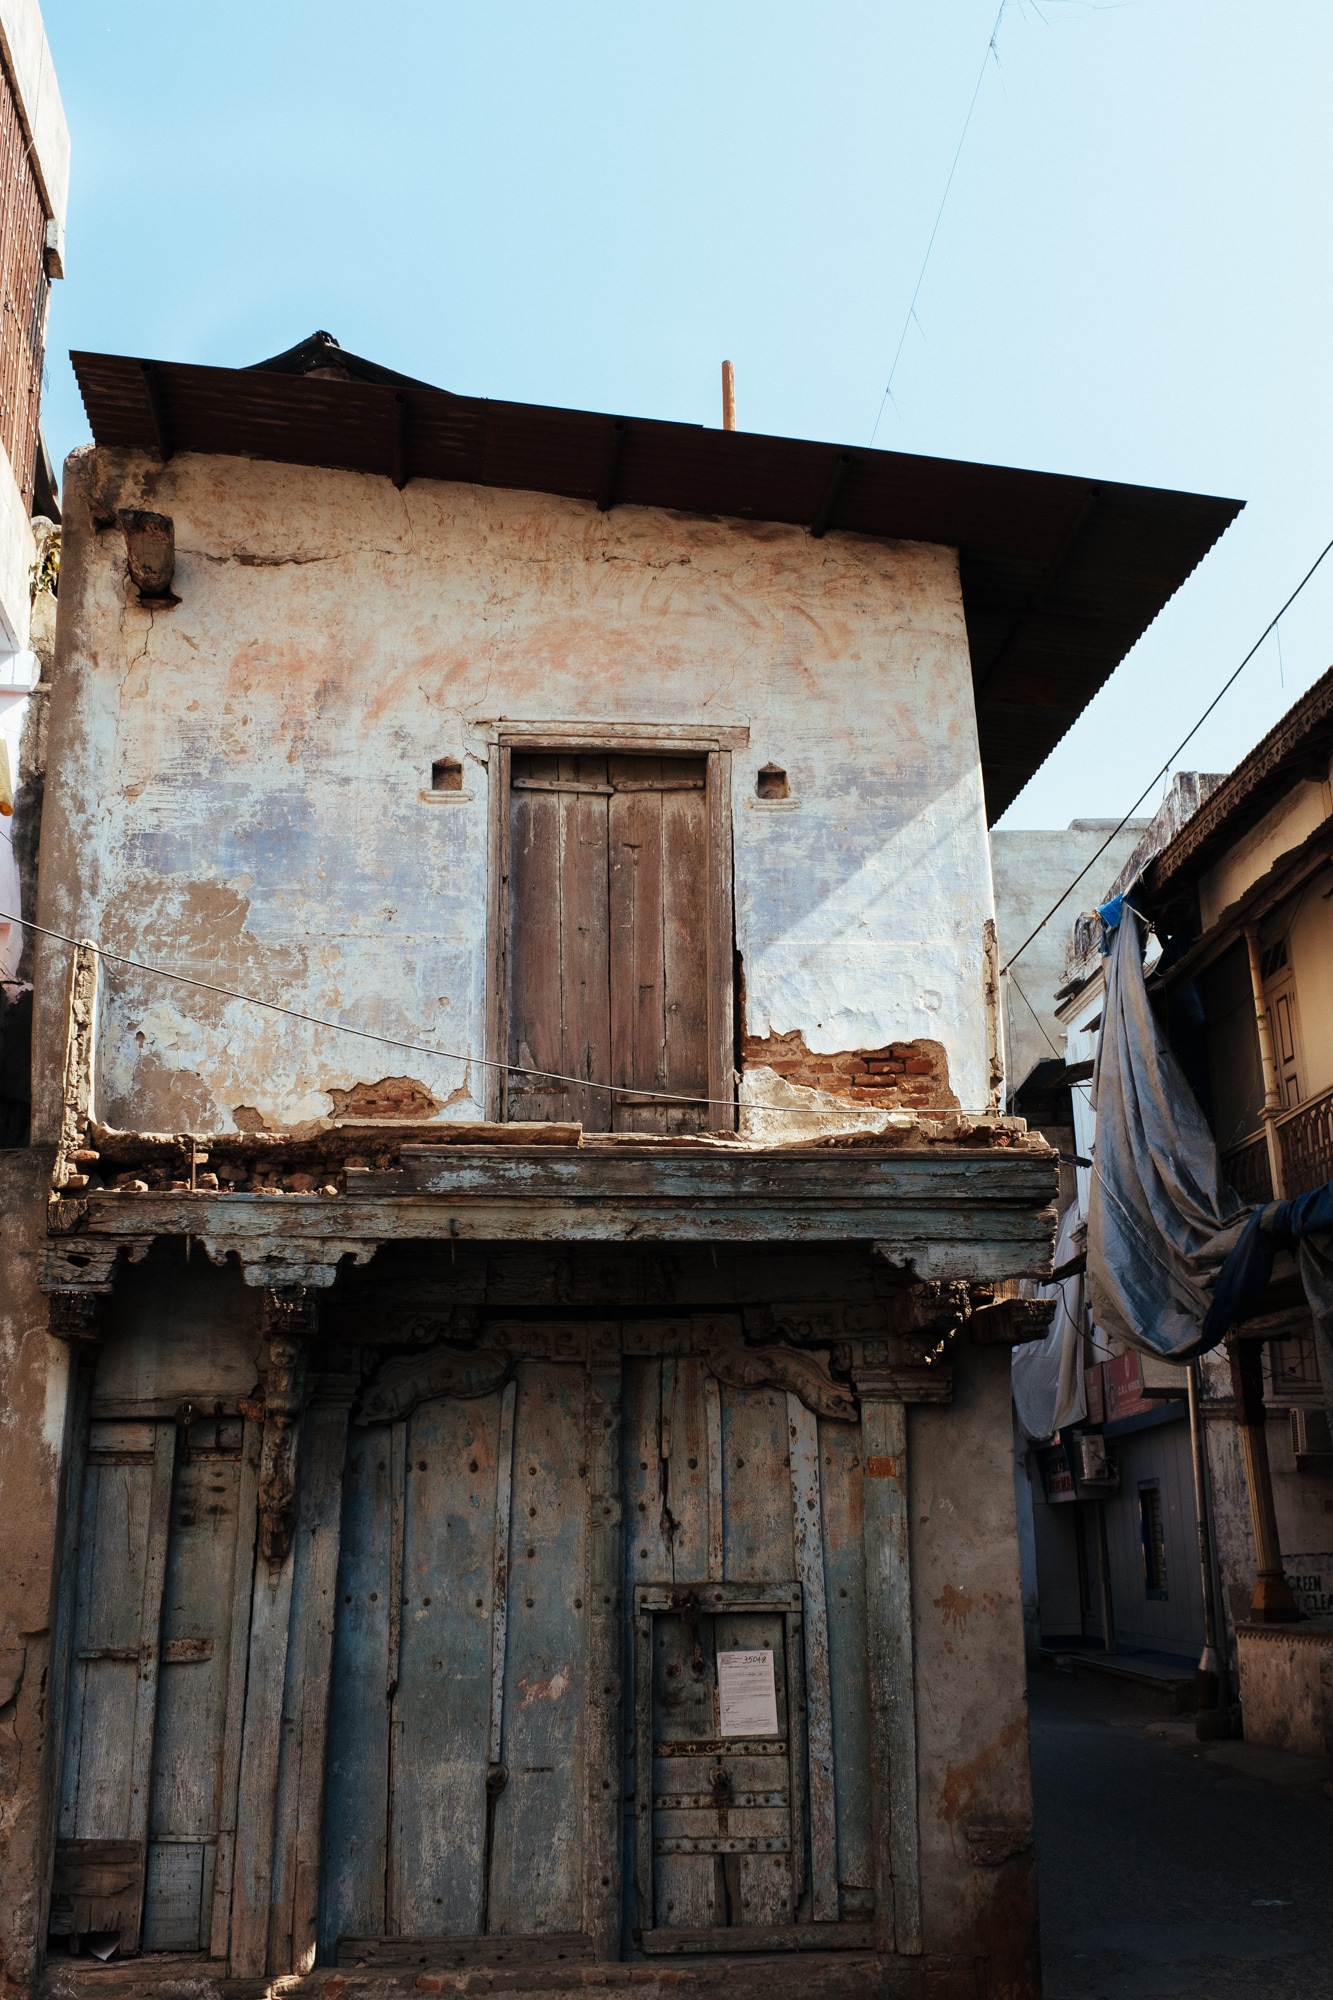 An old house in Ahmedabad.